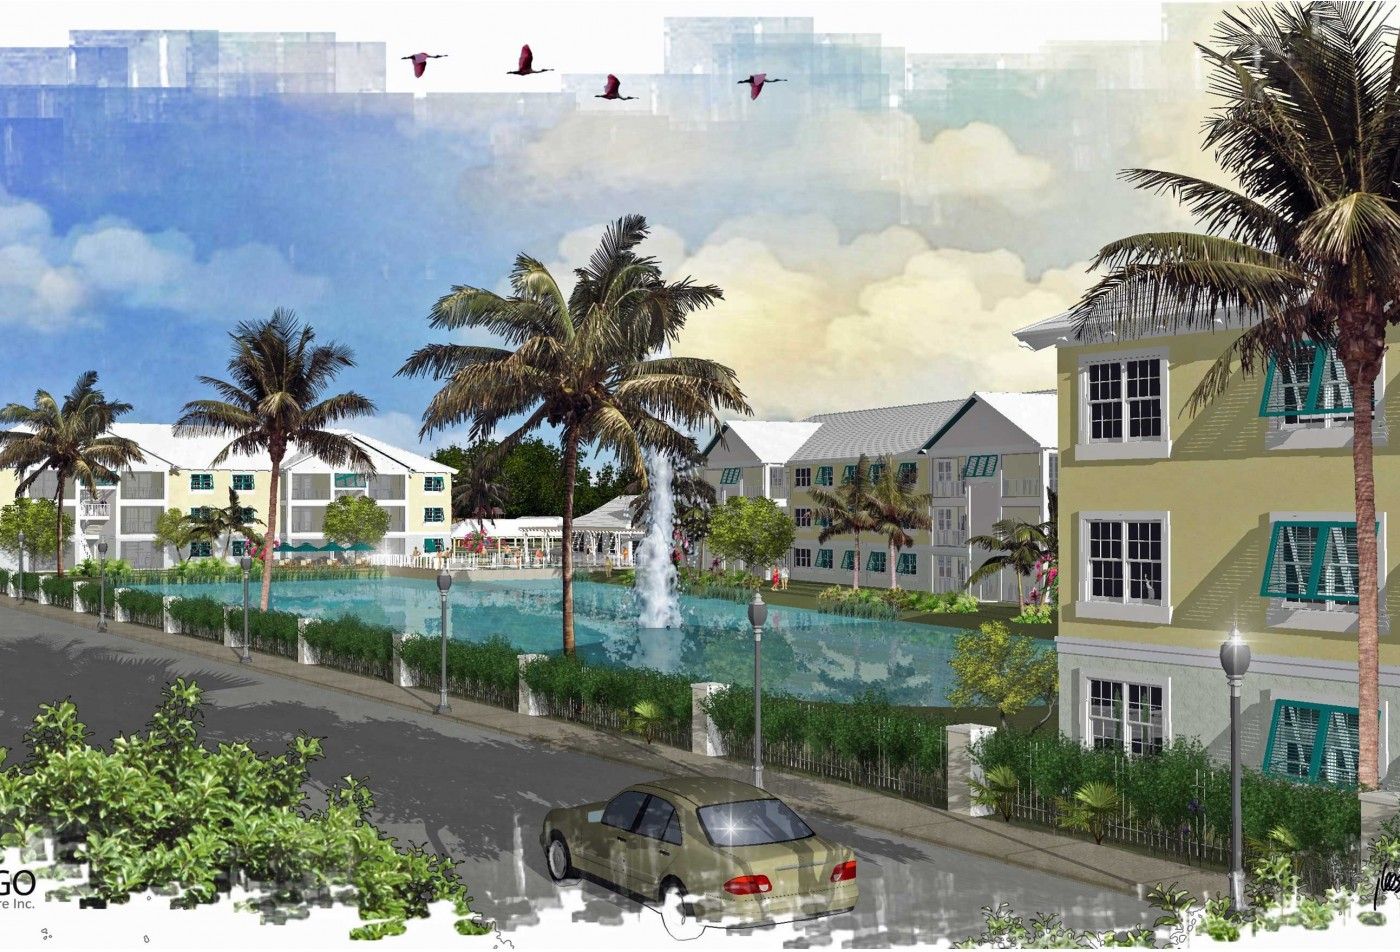 Graphic rendering of the community pool surrounded by apartment buildings.